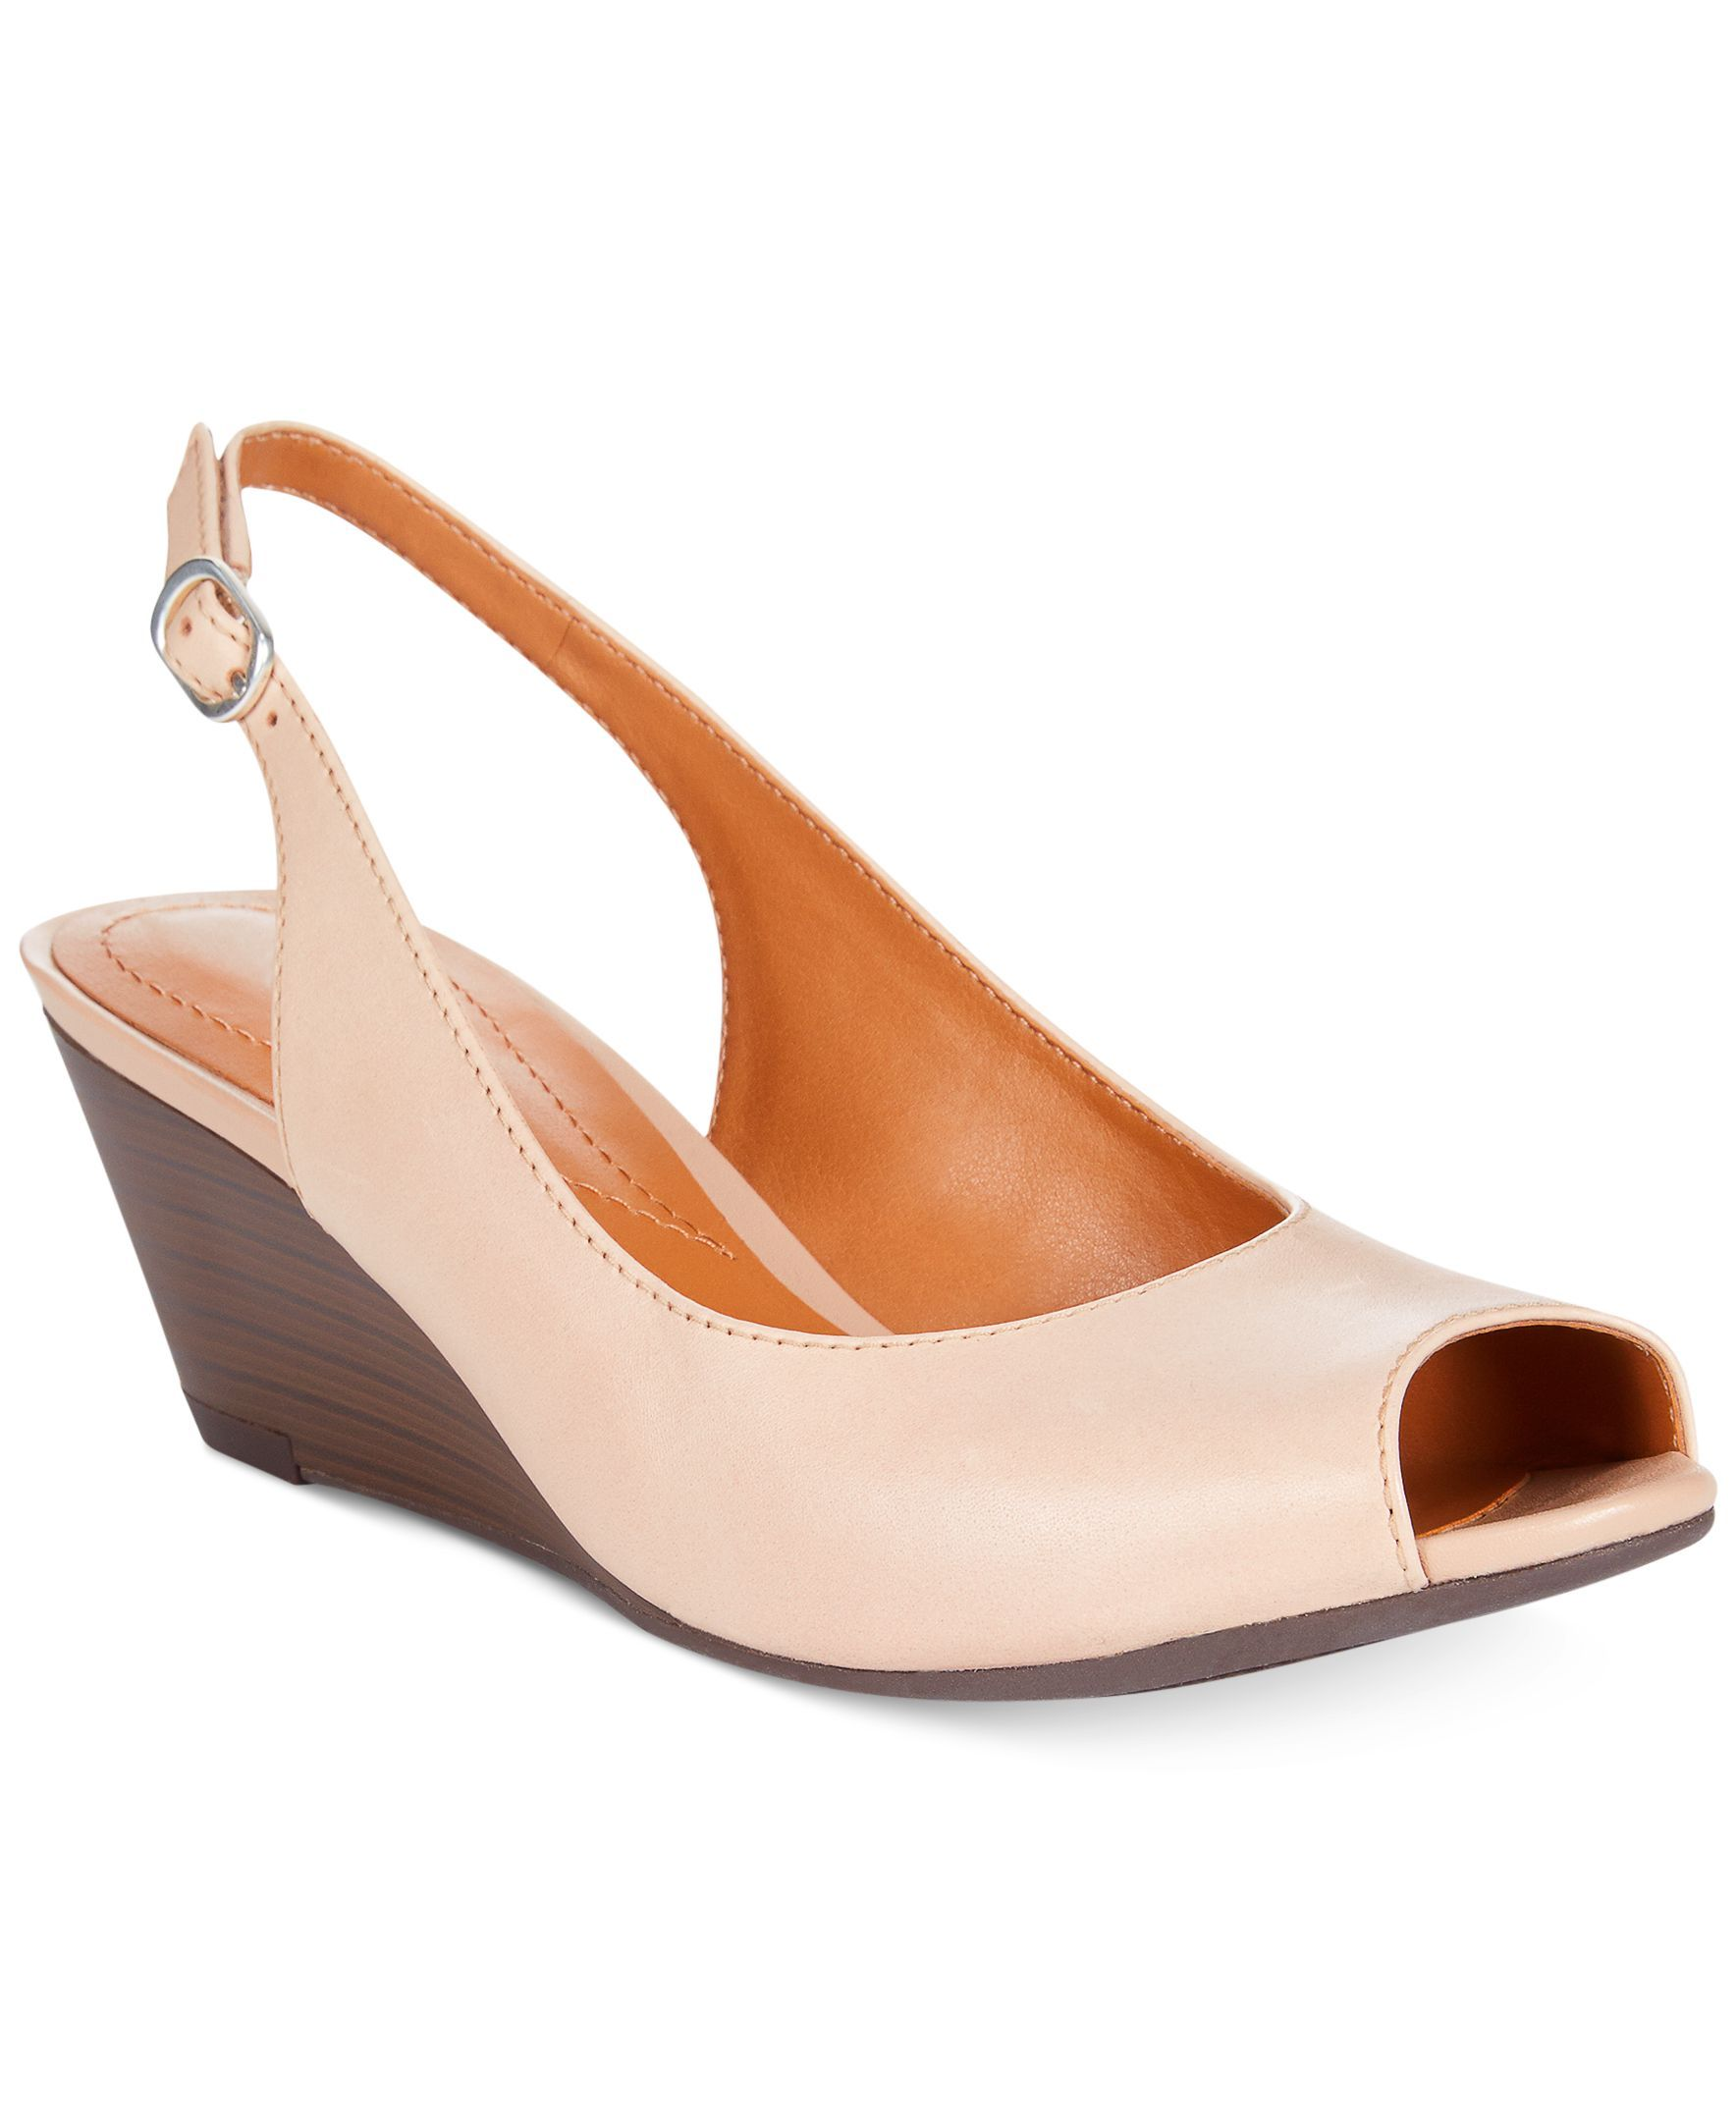 NEW CLARKS BRIELLE APRIL NUDE LEATHER WEDGE SANDALS WIDE FIT